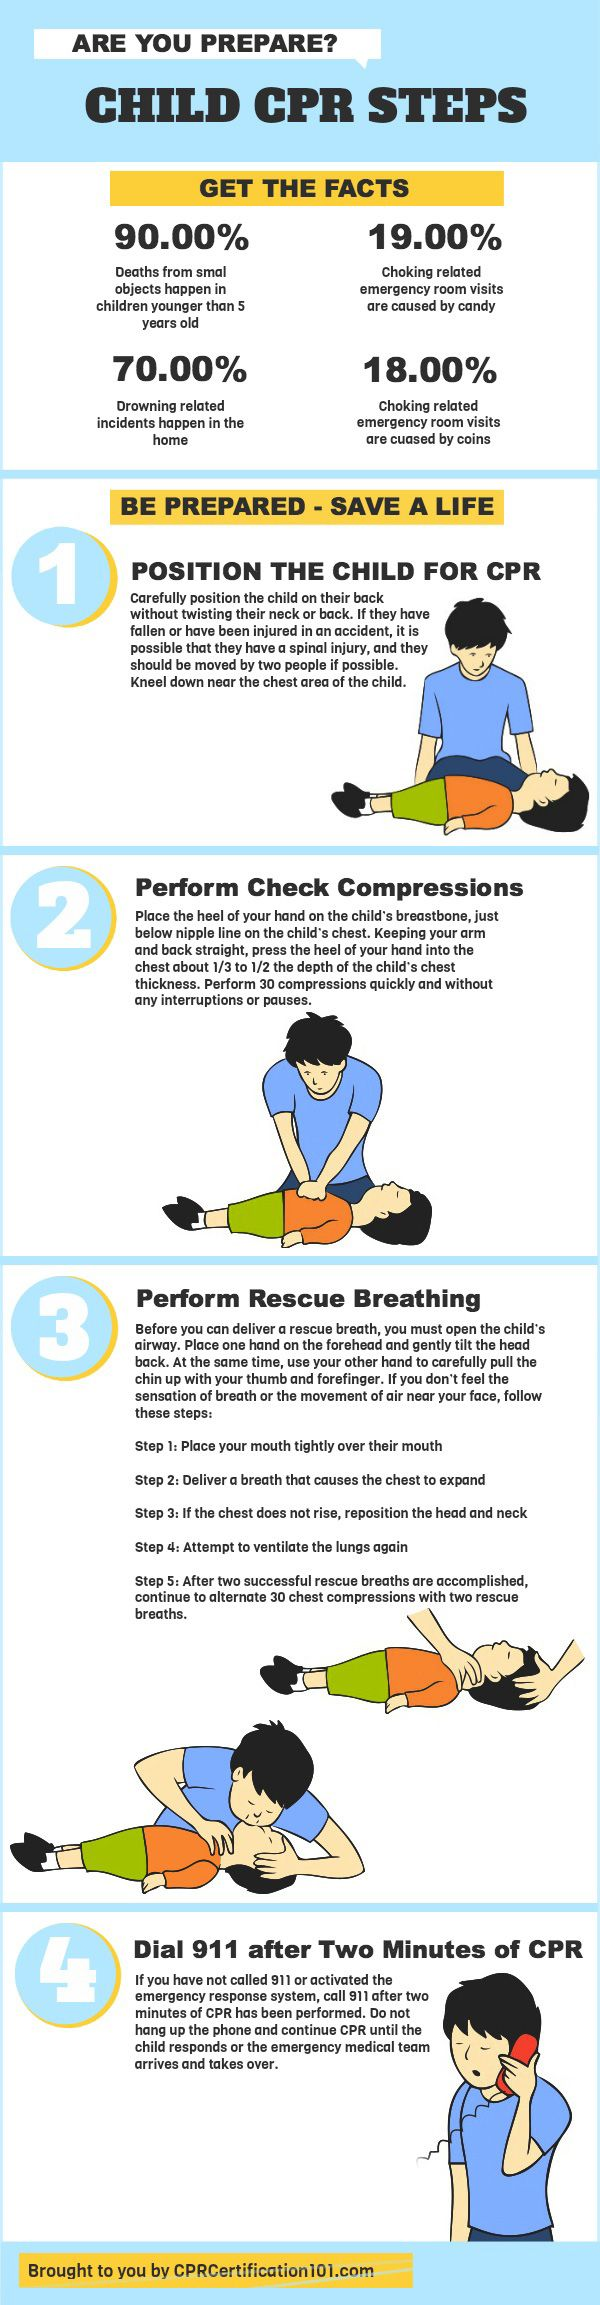 how to perform cpr Spain's puppy paramedic doesn't actually know how to perform cpr, a police  spokesman told euronews it's all a stunt to get schoolkids.